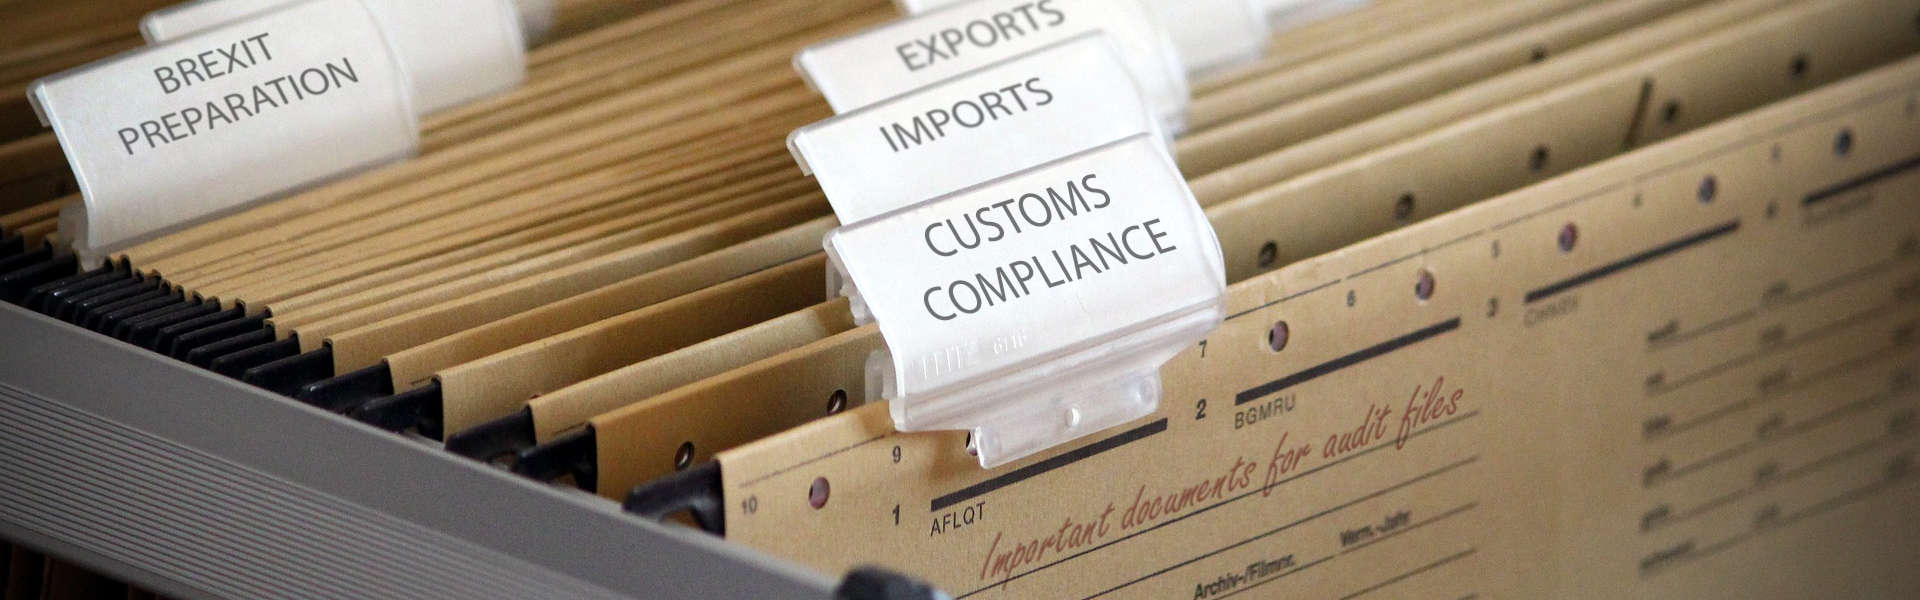 How to ensure customs compliance for Brexit